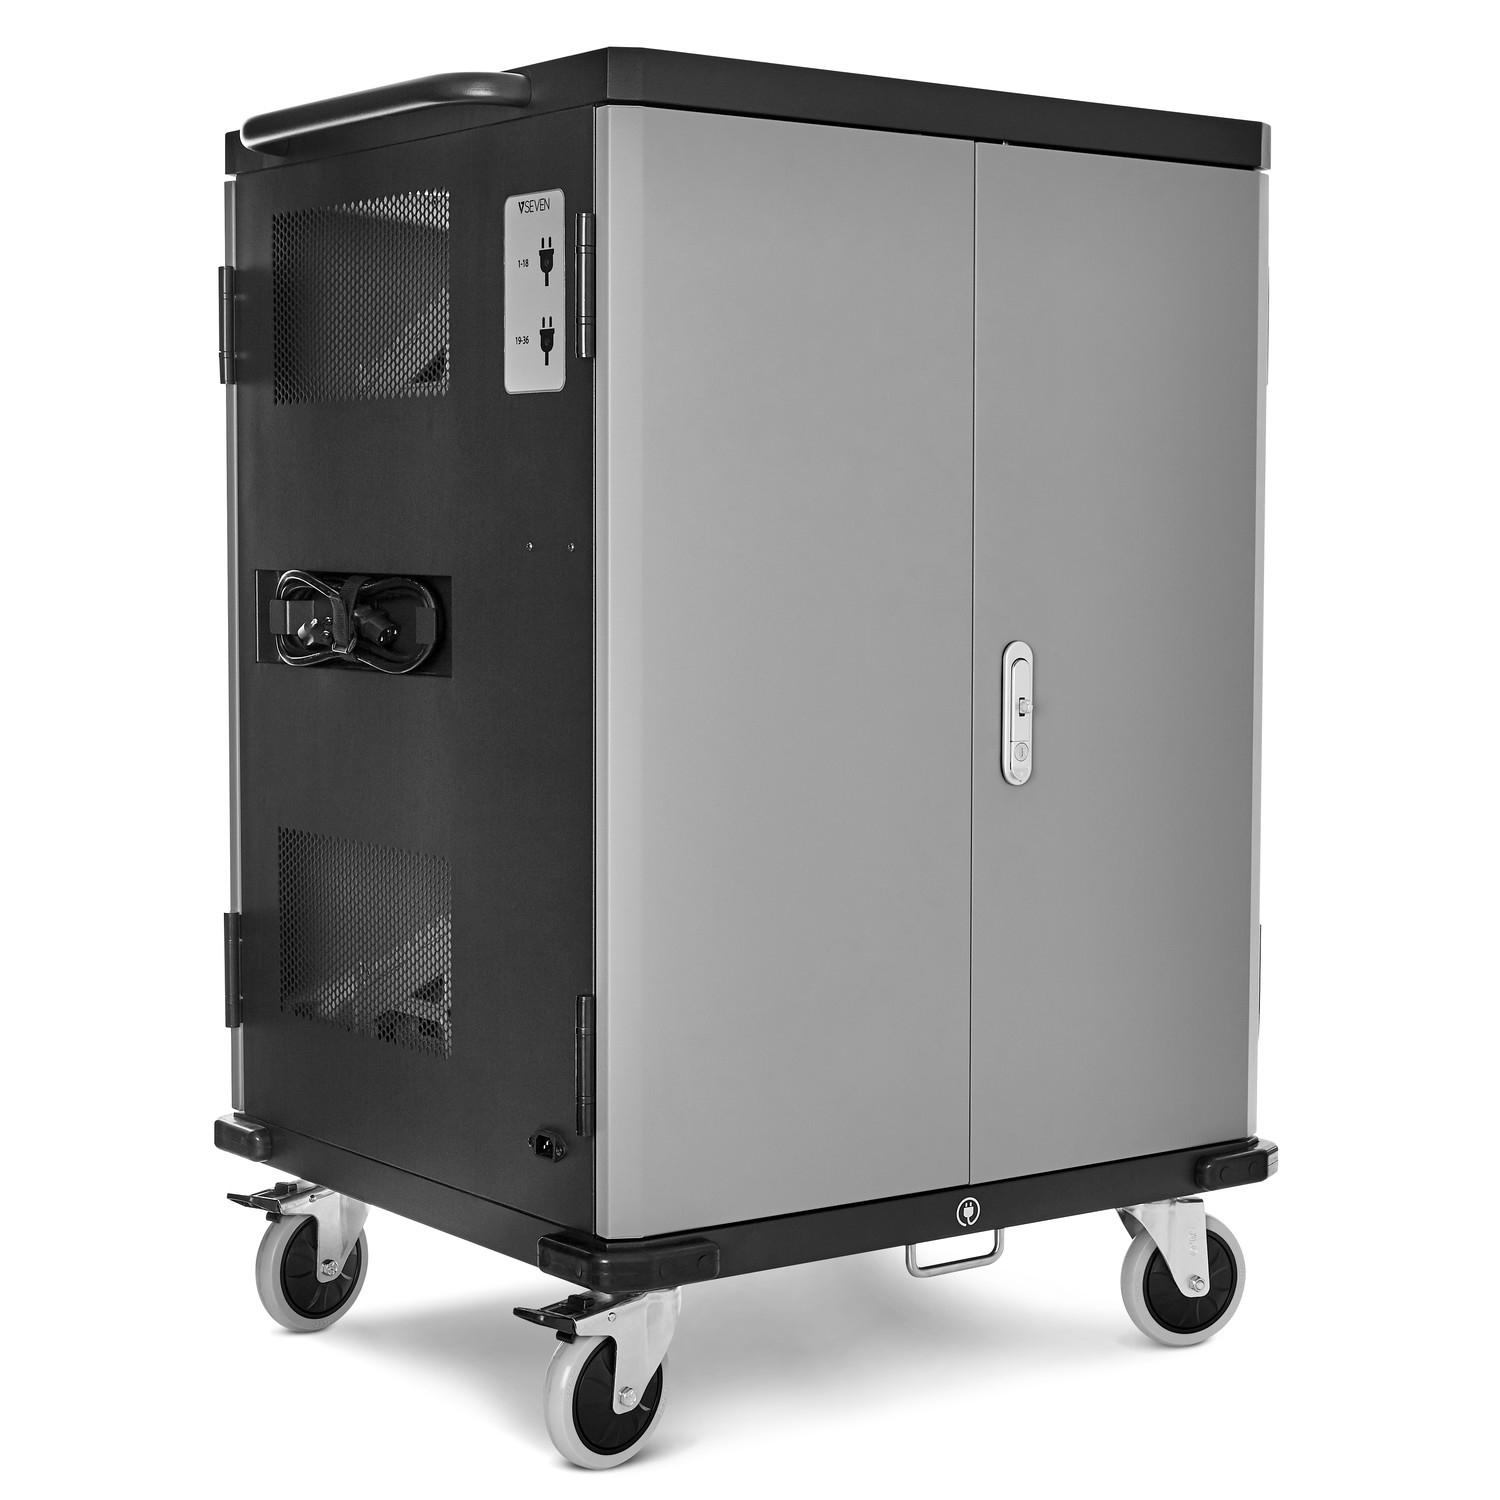 V7 CHGCT36-1E CHARGE CART - 36 DEVICES SCHUKO POWER